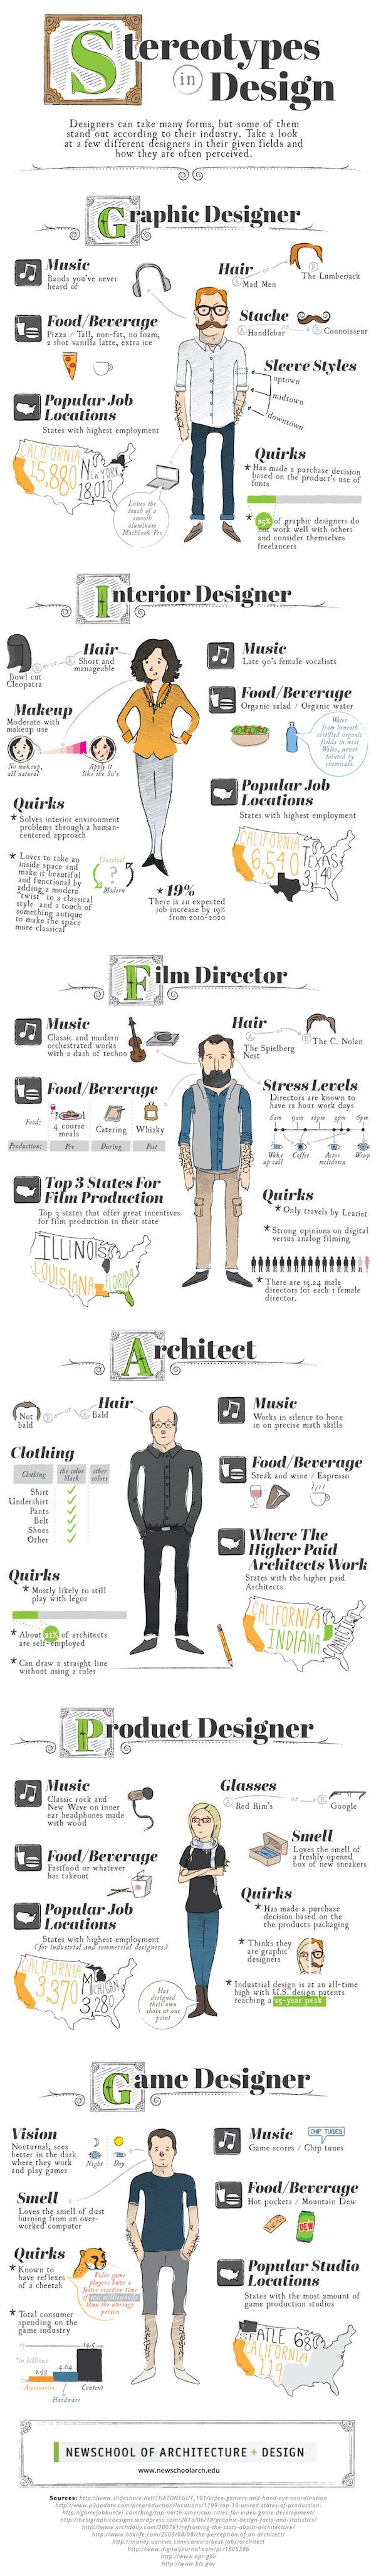 Stereotypes In How Designers Look